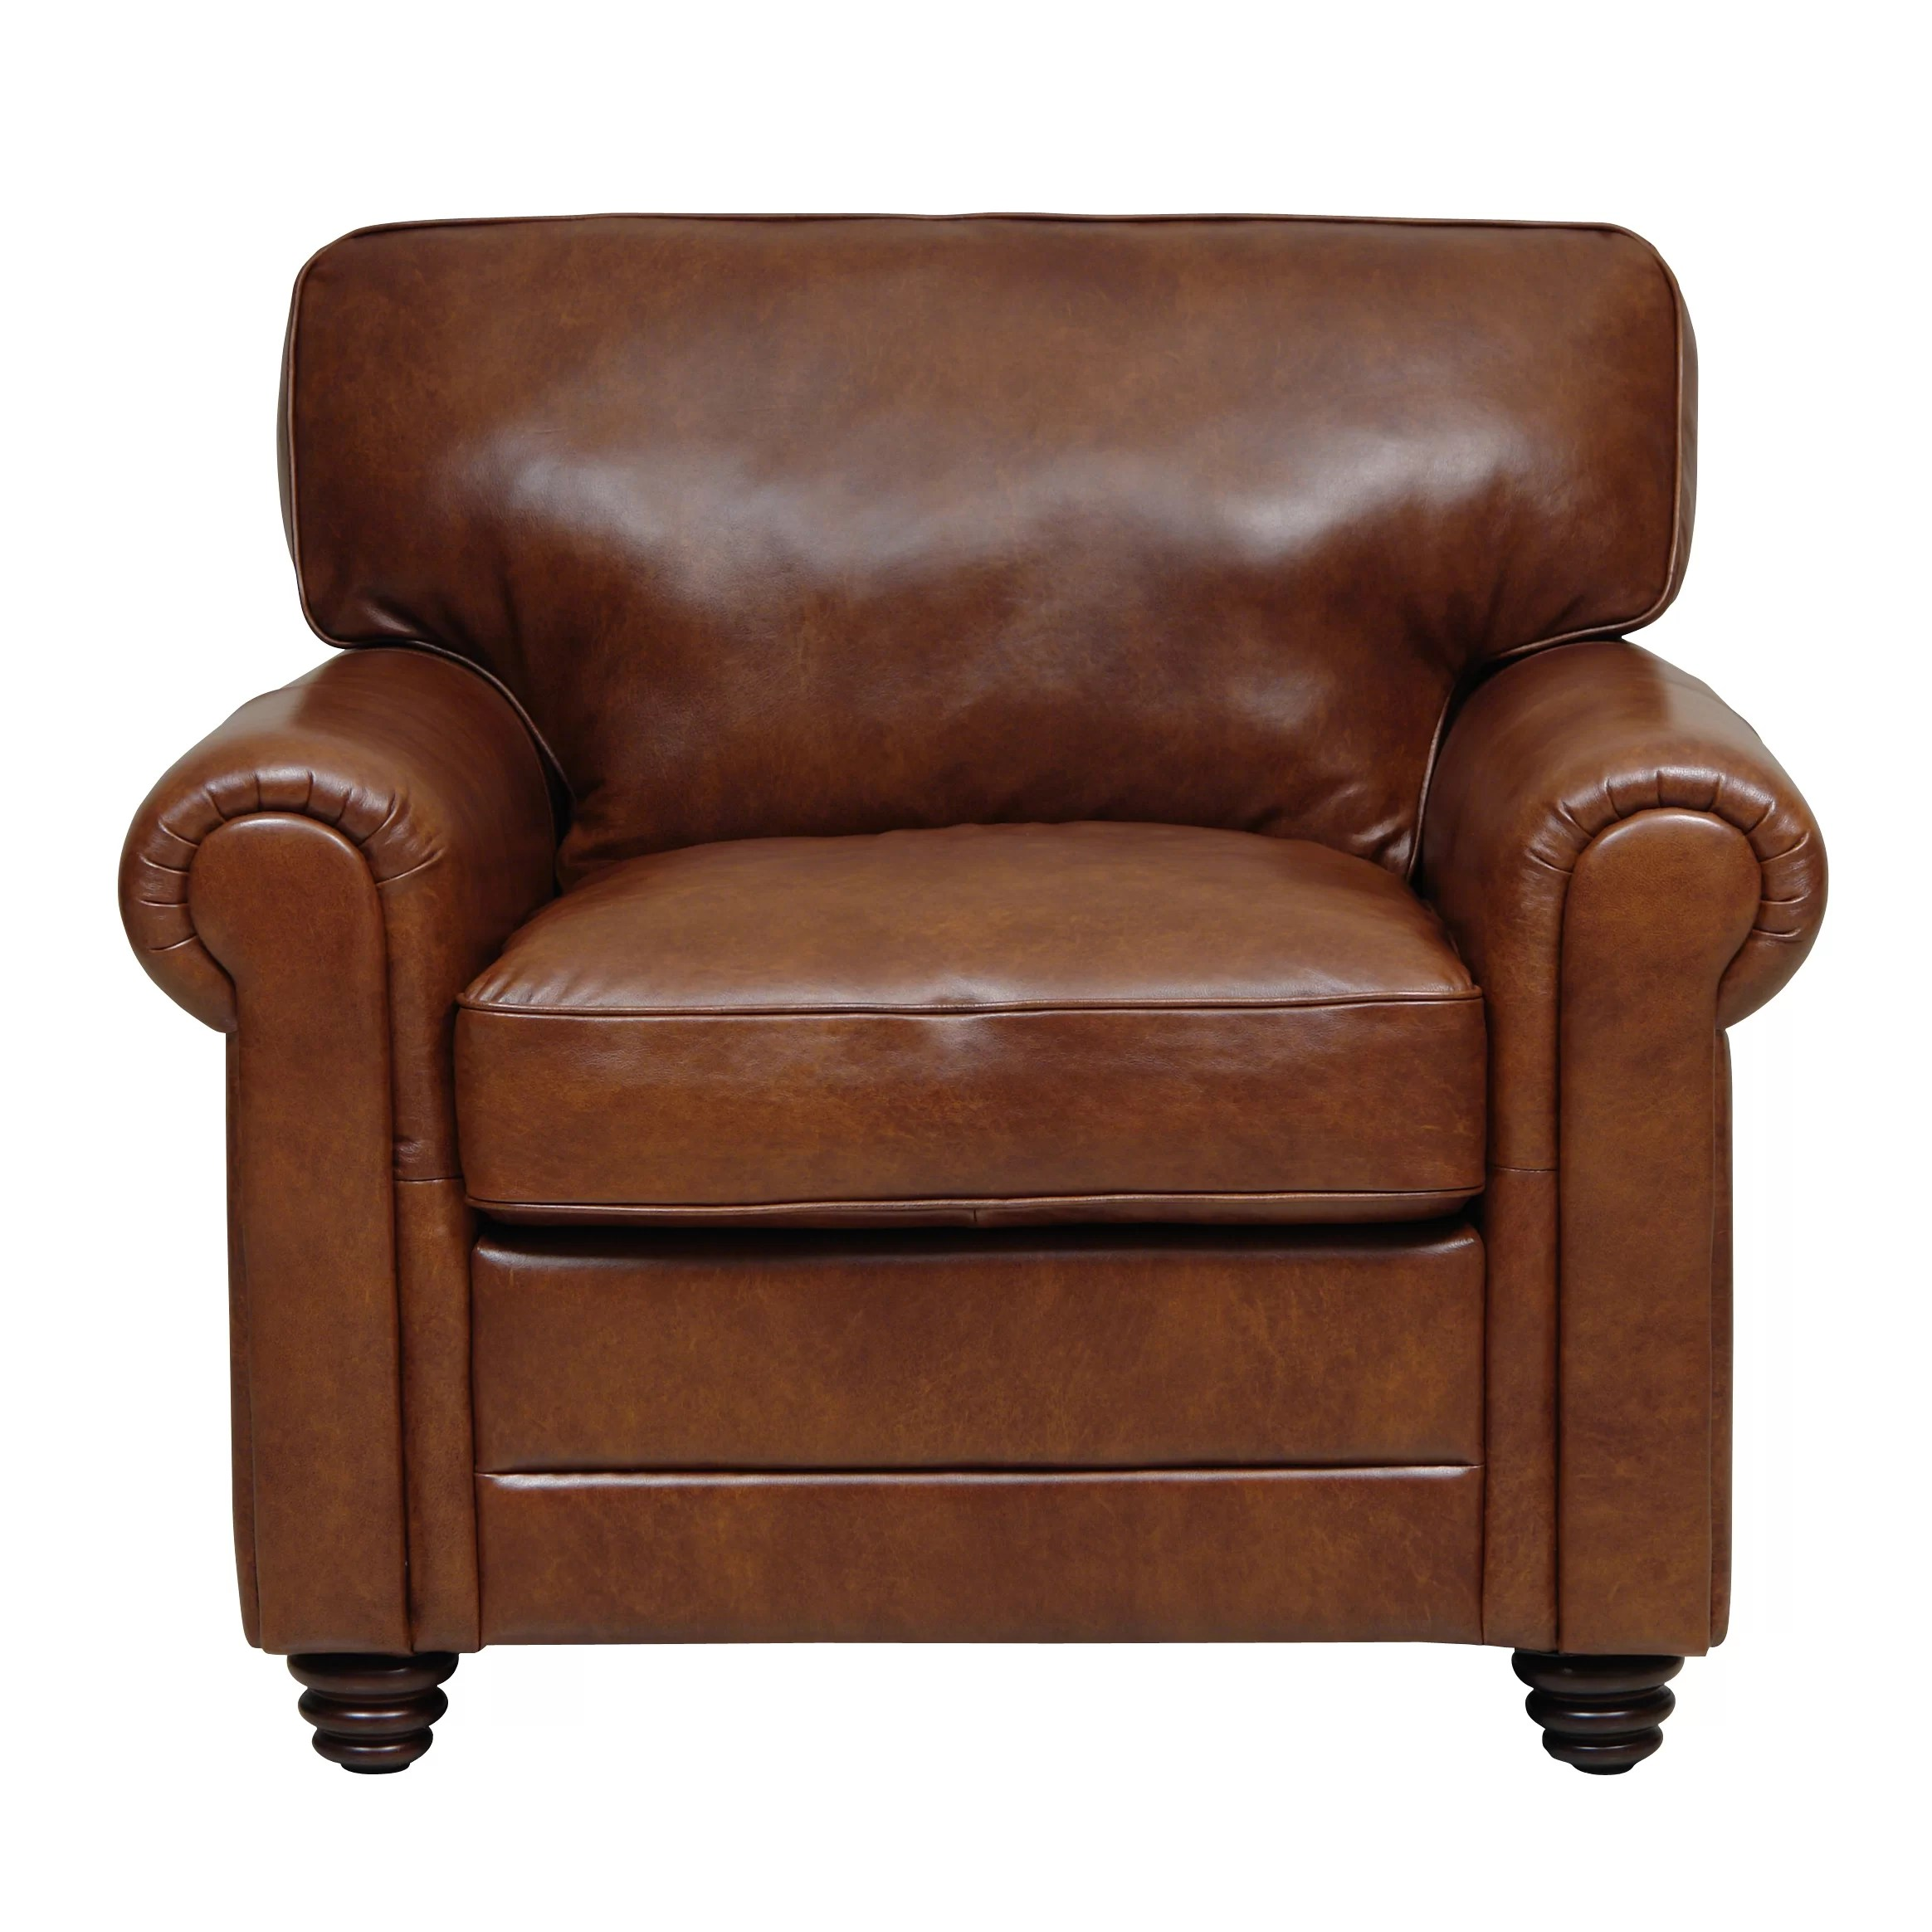 Club Chair Leather Darby Home Co Ardmore Italian Leather Club Chair And Reviews